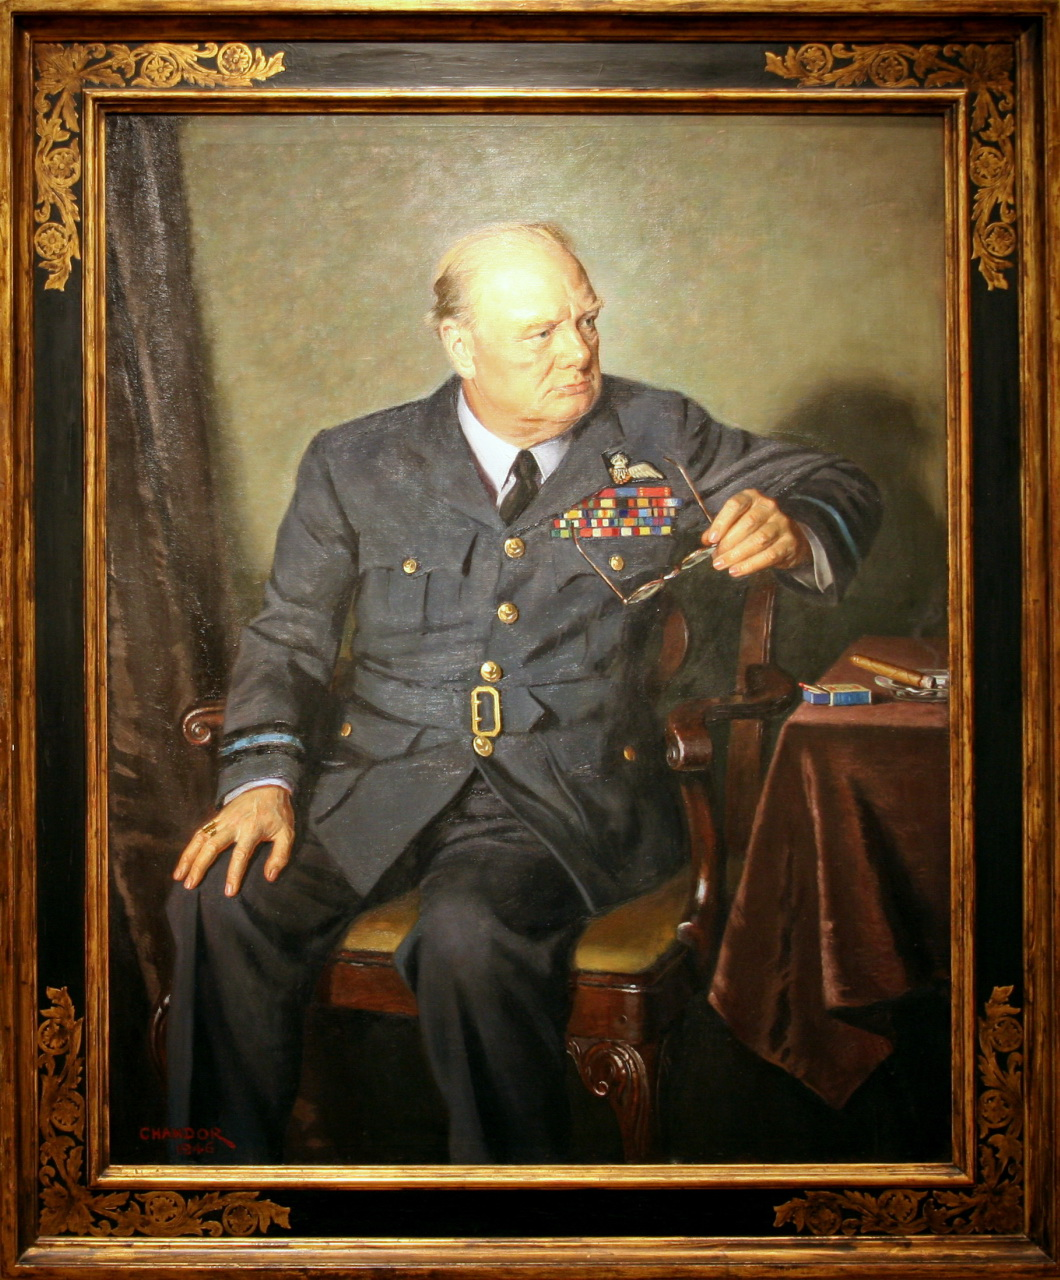 sir winston churchill by olivia hipp